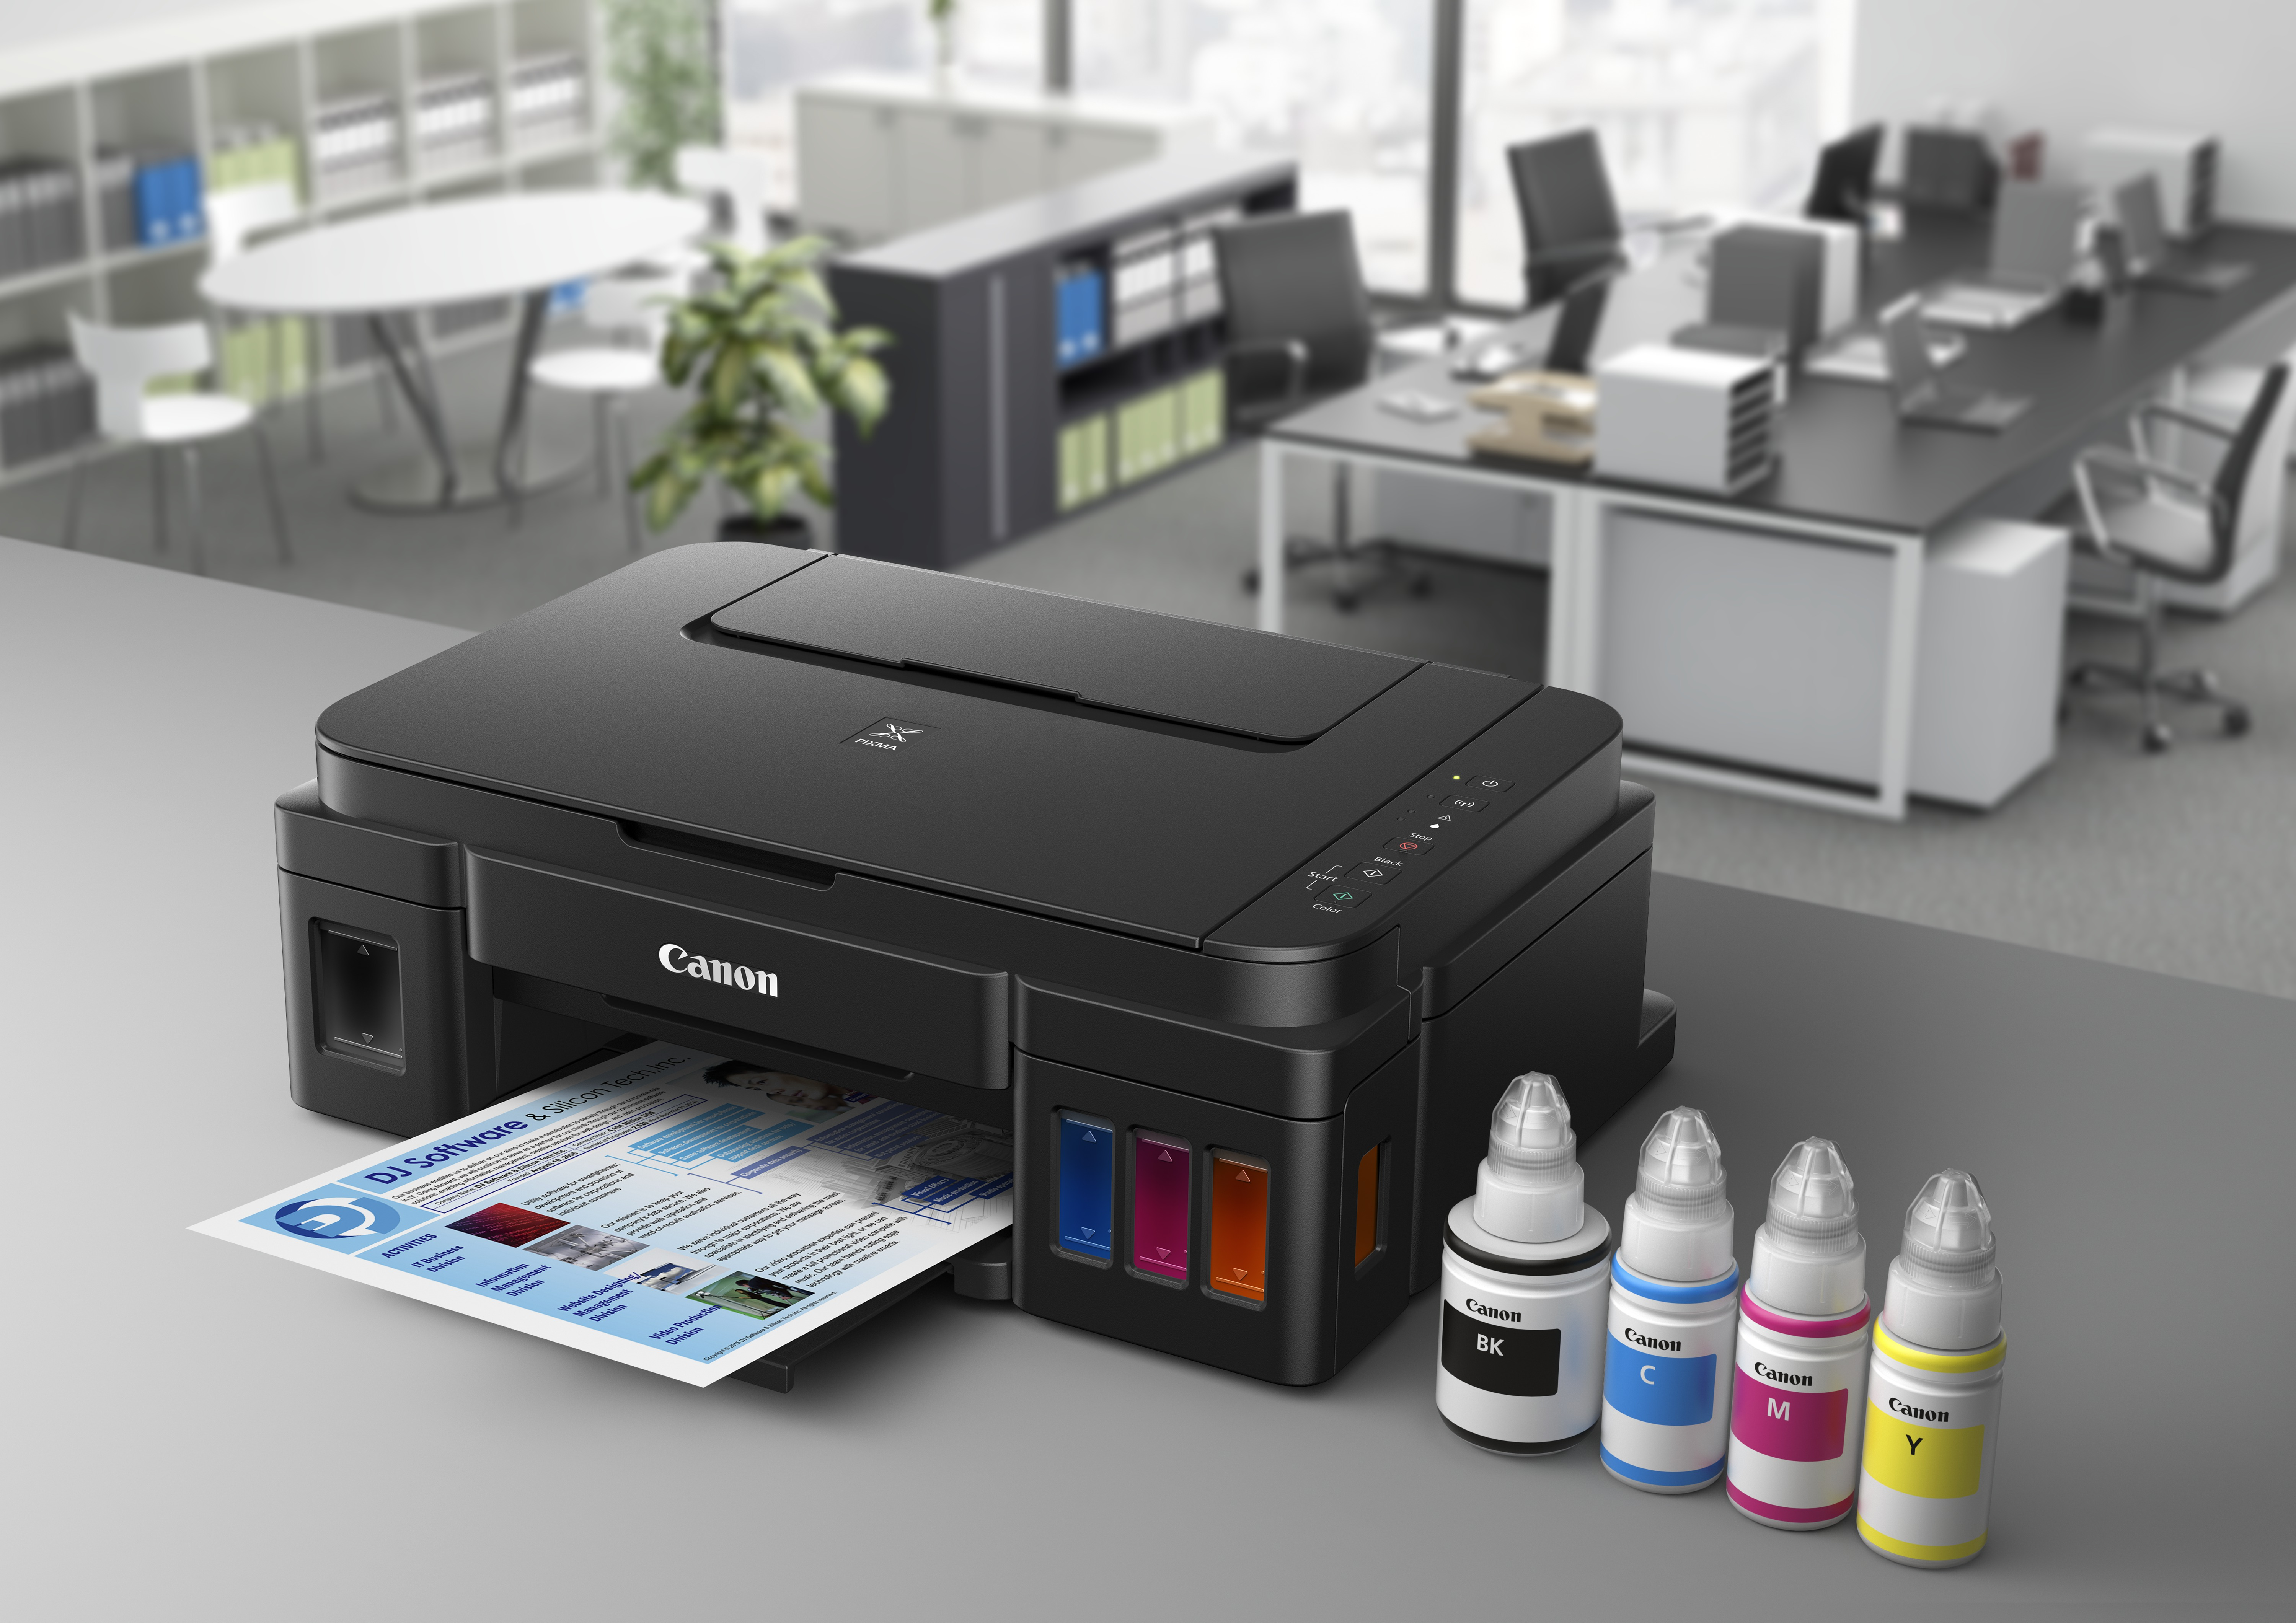 Best Printers 2018 - Best Picks - PCMag Best photo quality multifunction printer